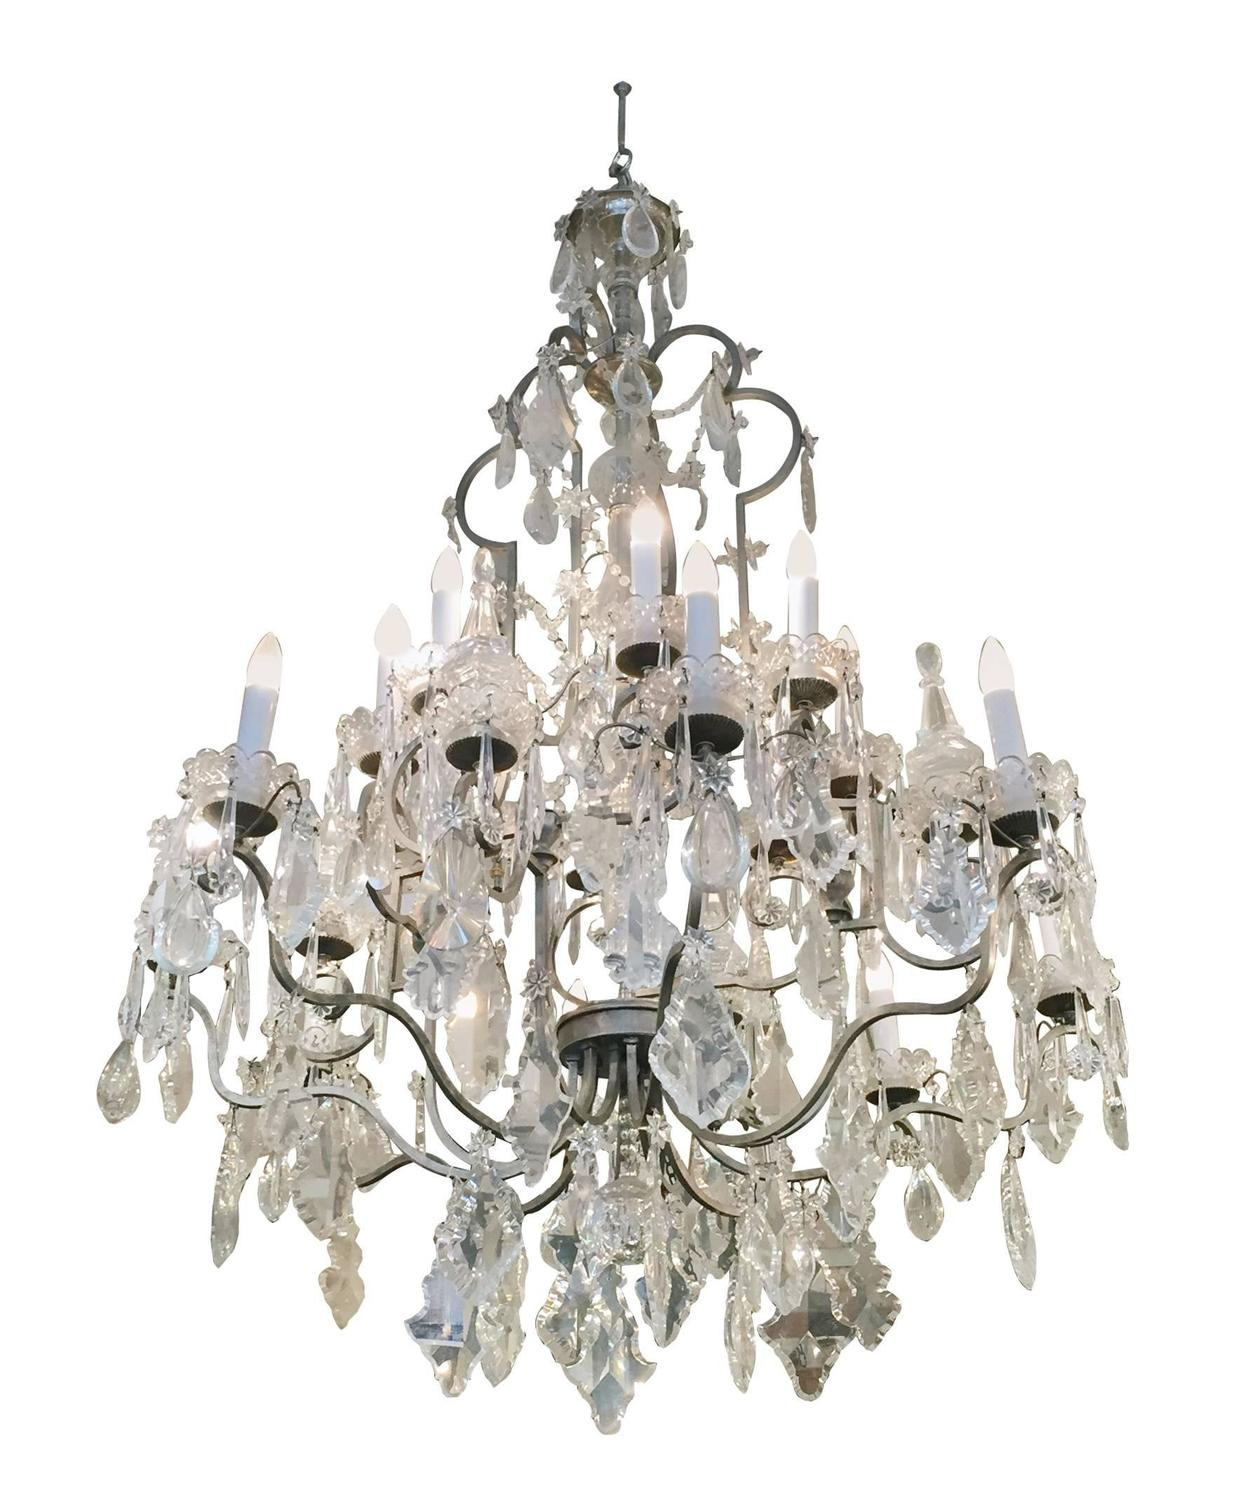 1940s Large Crystal Chandelier From The New York City